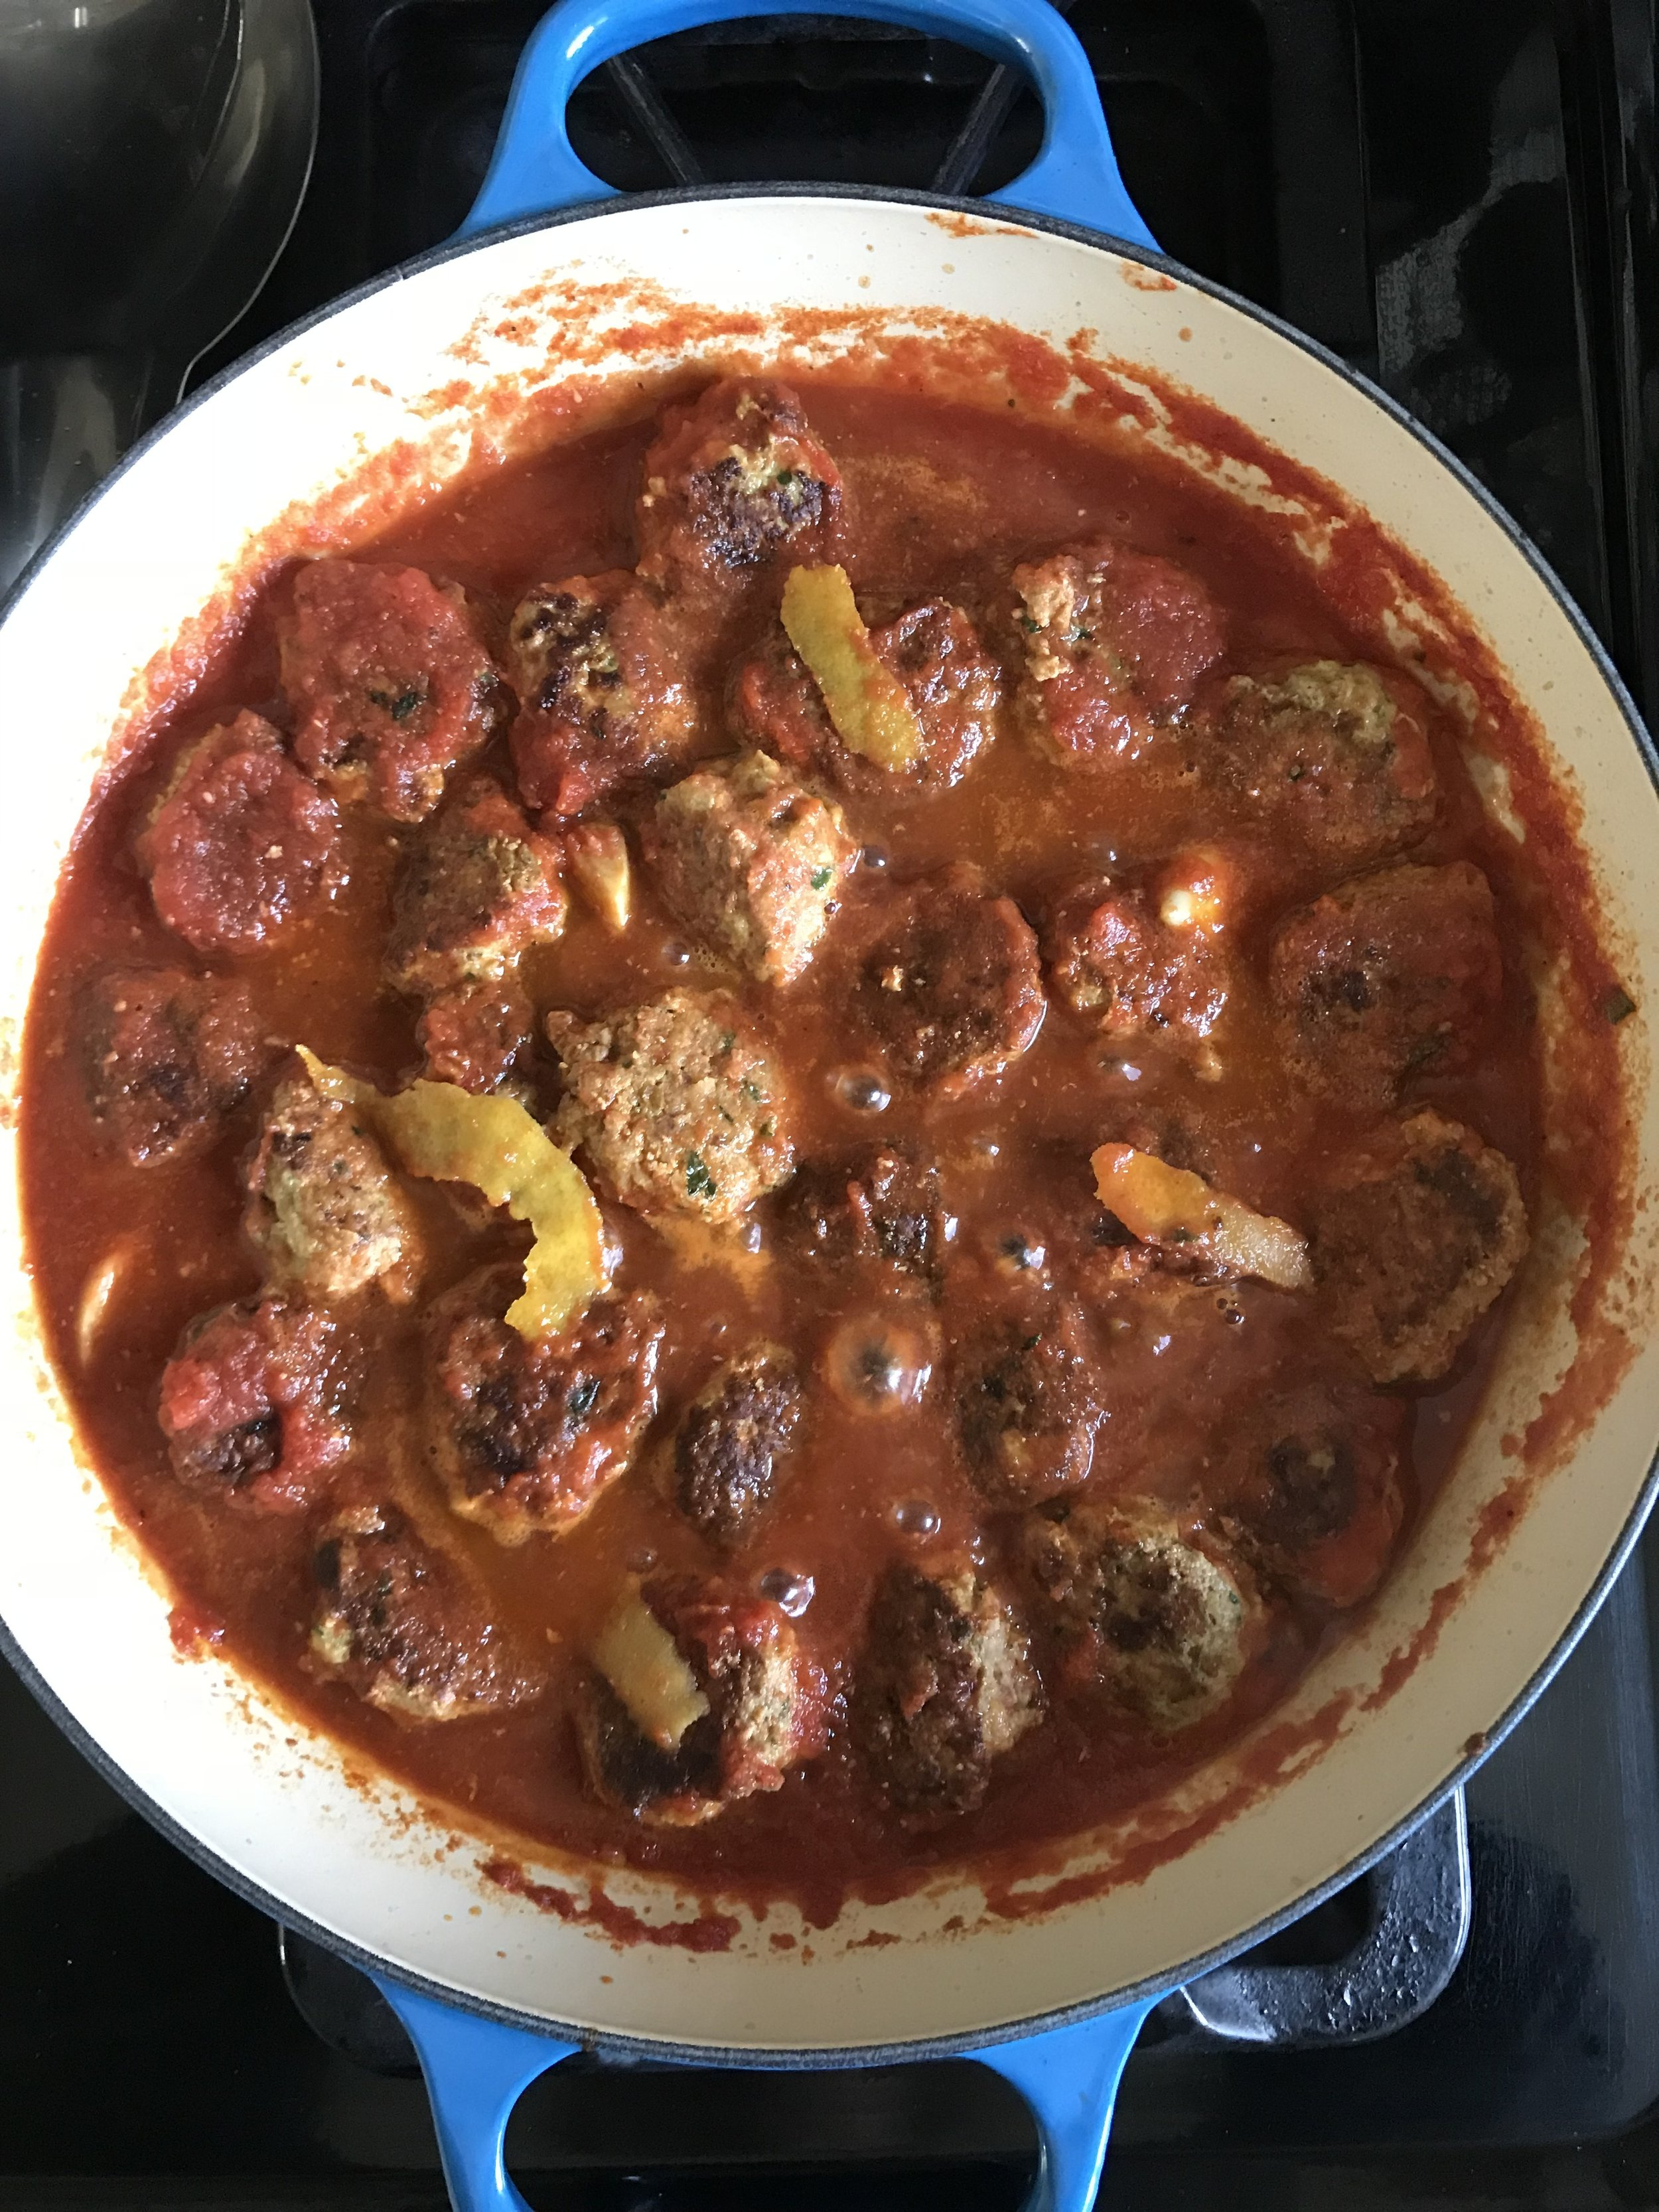 HERE IS WHAT YOU NEED: - FOR MEATBALLS:2 pounds ground turkey1 teaspoon turmeric1 1/2 teaspoons ground coriander1/2 teaspoon ground aniseed1 teaspoon aleppo pepper (or to taste)1 teaspoon ground cinnamon1/2 teaspoon sumac1 teaspoon smoked sweet paprika1 1/2 teaspoon salt1 1/2 teaspoon black pepper3 garlic cloves (grated on microplane)1 cup loosely packed parsley, chopped finely3 scallions, chopped finely (green and white parts)2 eggs2 slices of day old bread, cut into small cubes1/2 cup of milk (to soak the bread in)FOR SAUCE:2 tablespoons olive oil2 garlic cloves, crushed1 teaspoon smoked paprika1 teaspoon aleppo pepper (or to taste)1 small onion, diced small2 cups crushed tomatoes1 to 2 cups chicken stockpeel from 1 lemon (peeled with a peeler)saltpepperFOR YOGURT SAUCE:1/2 cup plain yogurt1/2 cup sour cream1 tablespoon lemon juice1 teaspoon sumacsmall garlic clove, minced finely or grated on microplanesaltpepper